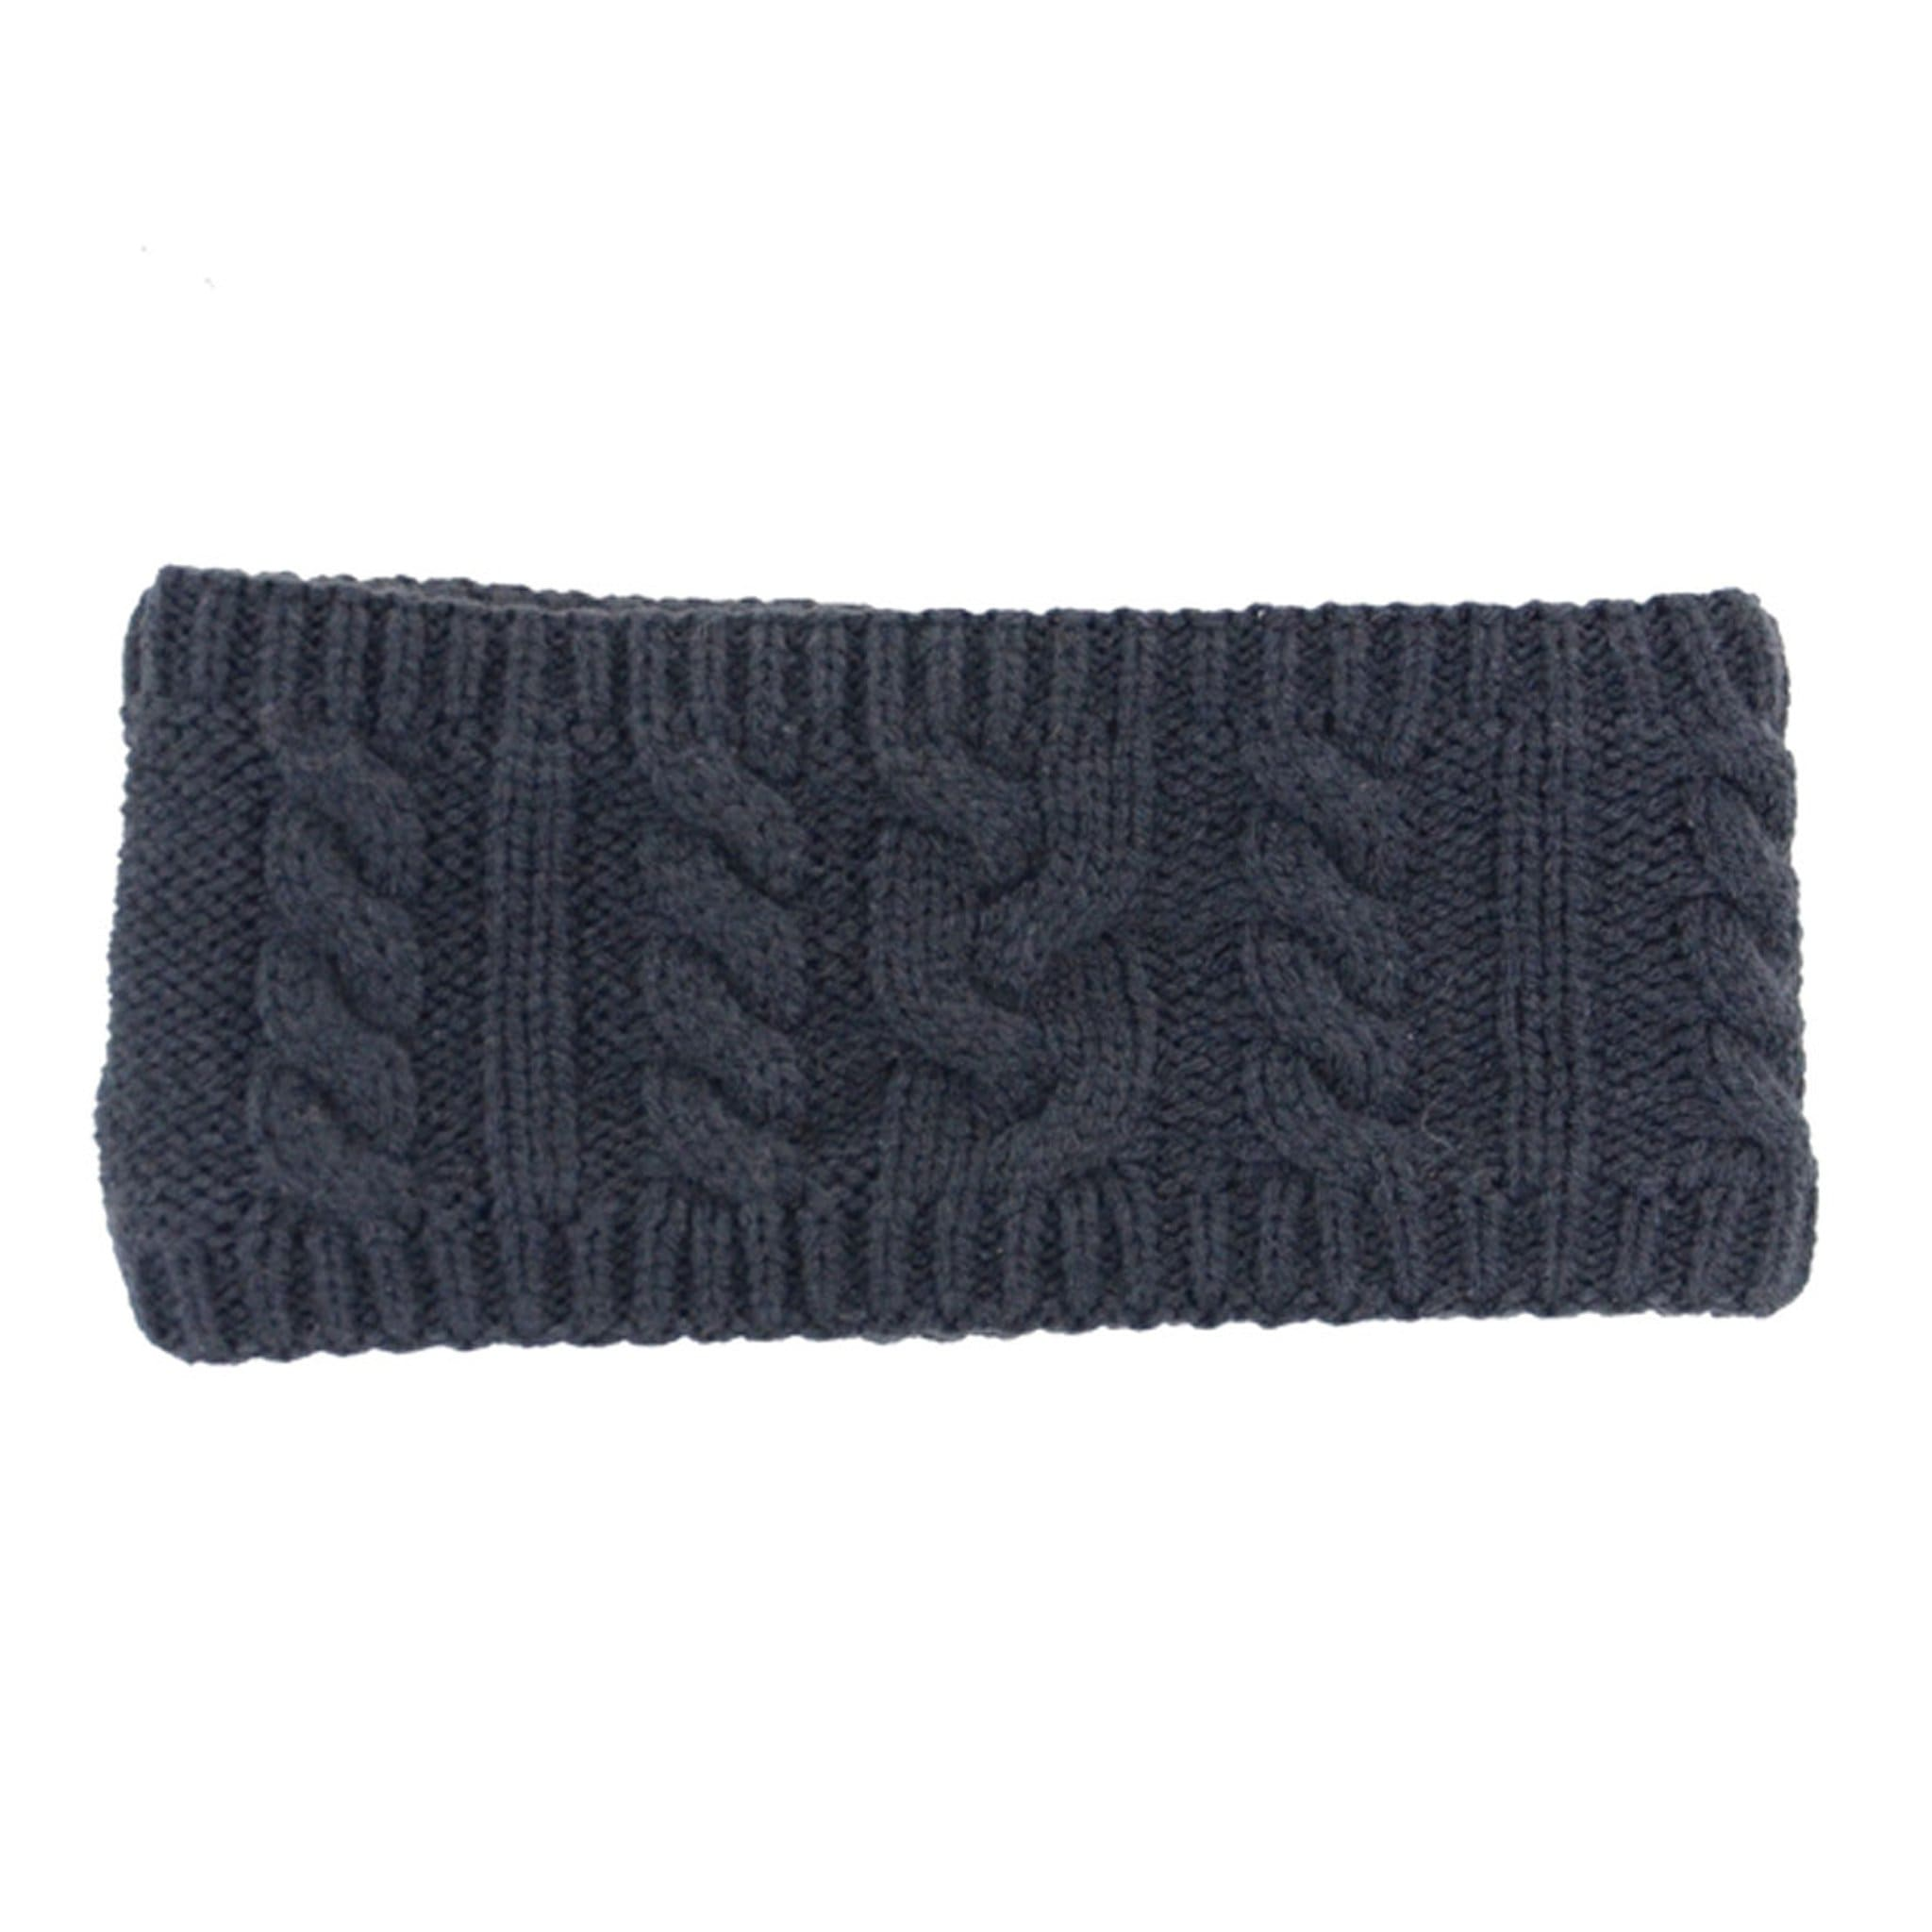 HyFASHION Meribel Cable Knit Headband Navy 15401.